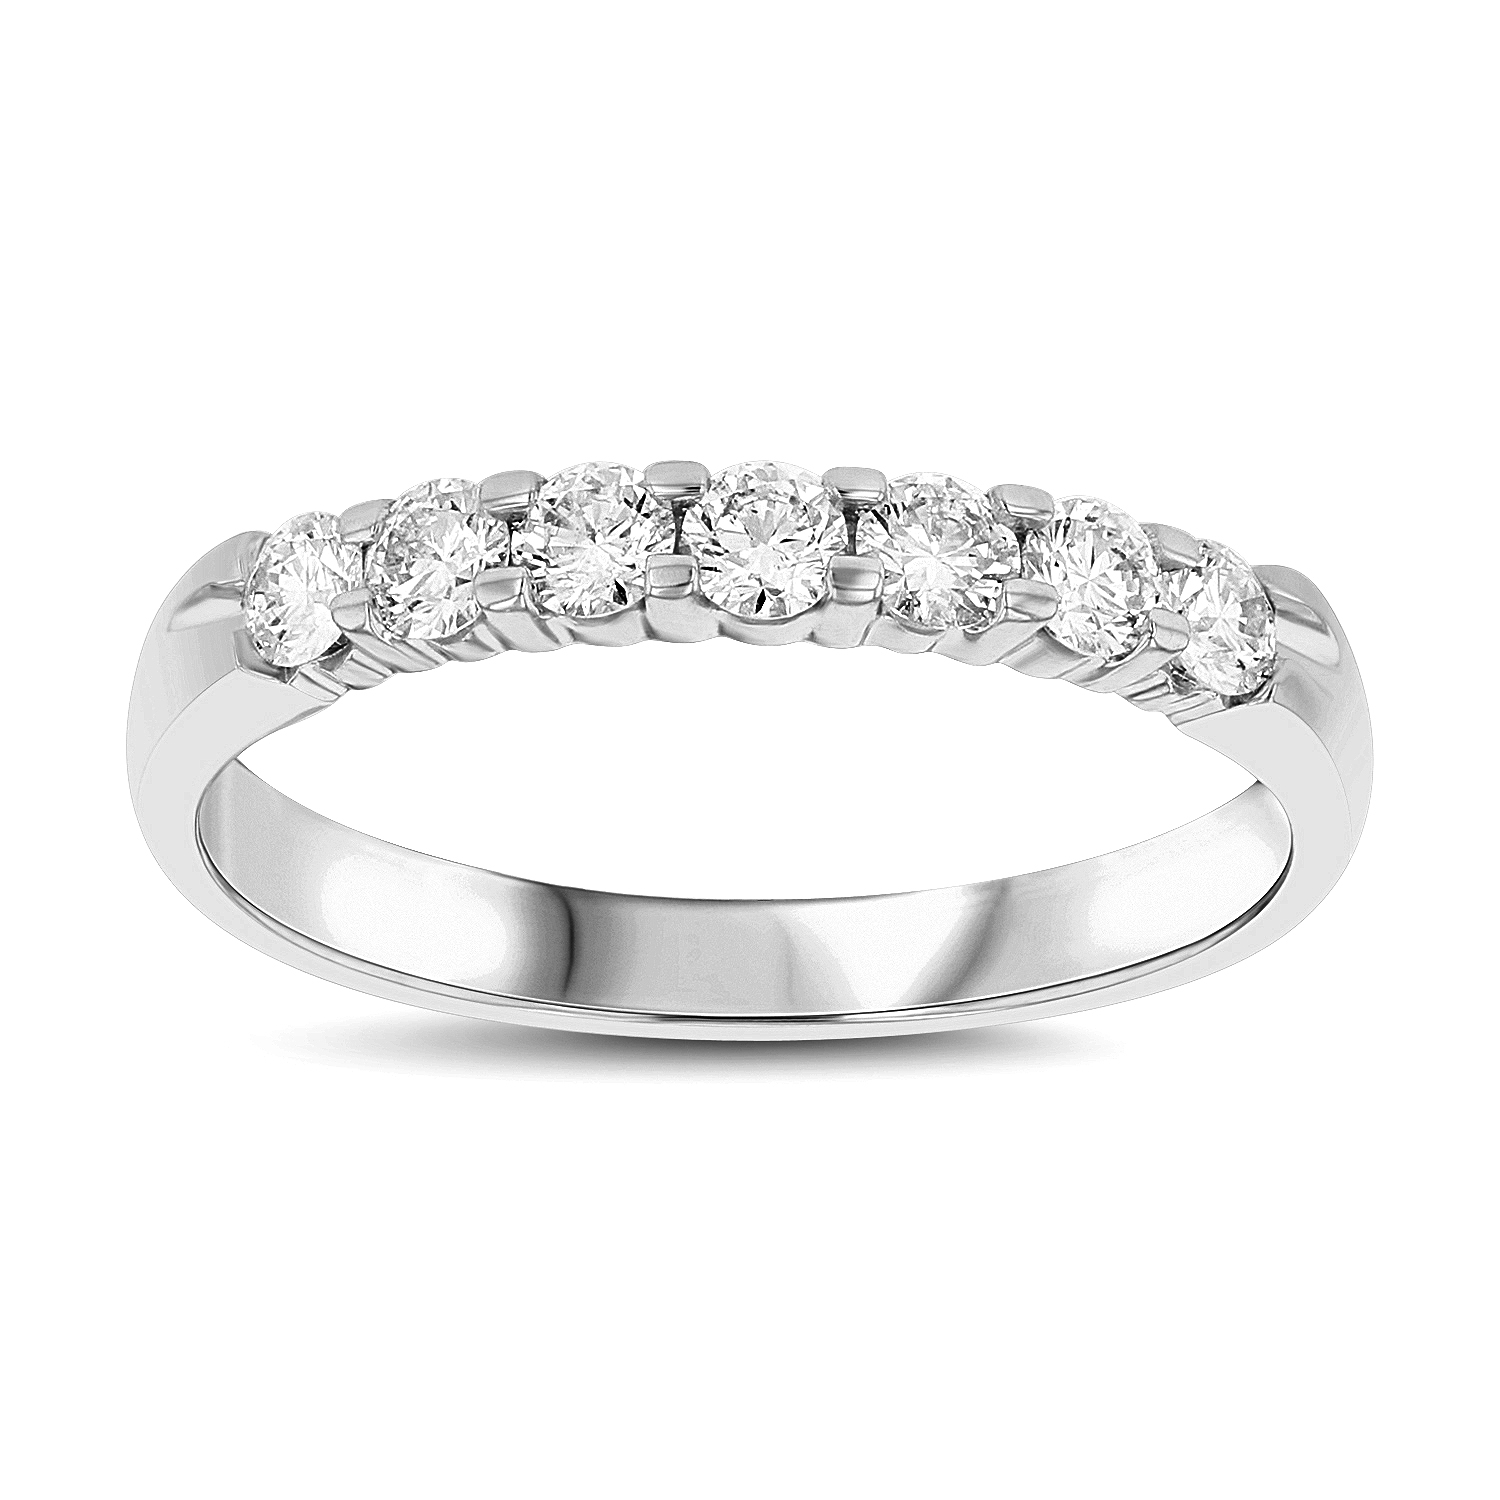 View 0.50ct tw 7 Stone Round Diamonds Shared Prong Anniversary or Wedding Band 14k Gold Bridal Ring H-J, SI